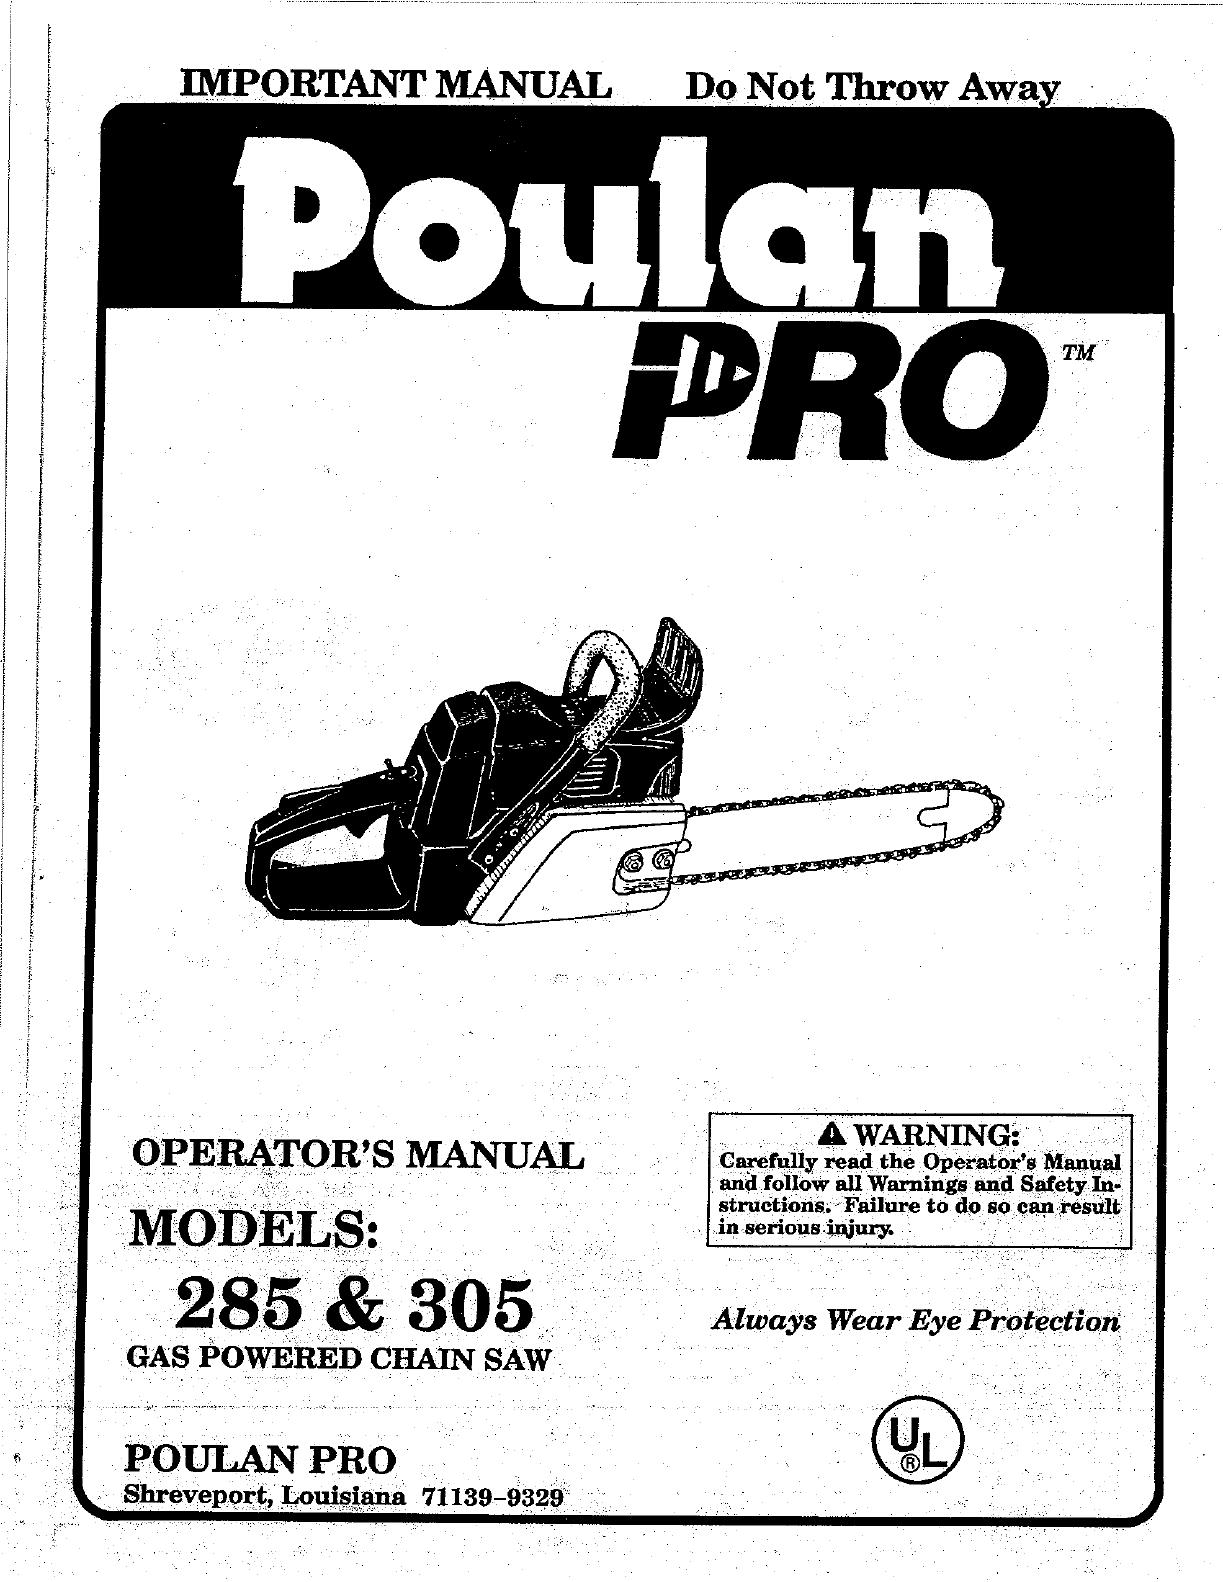 Poulan Chainsaw 305 User Guide